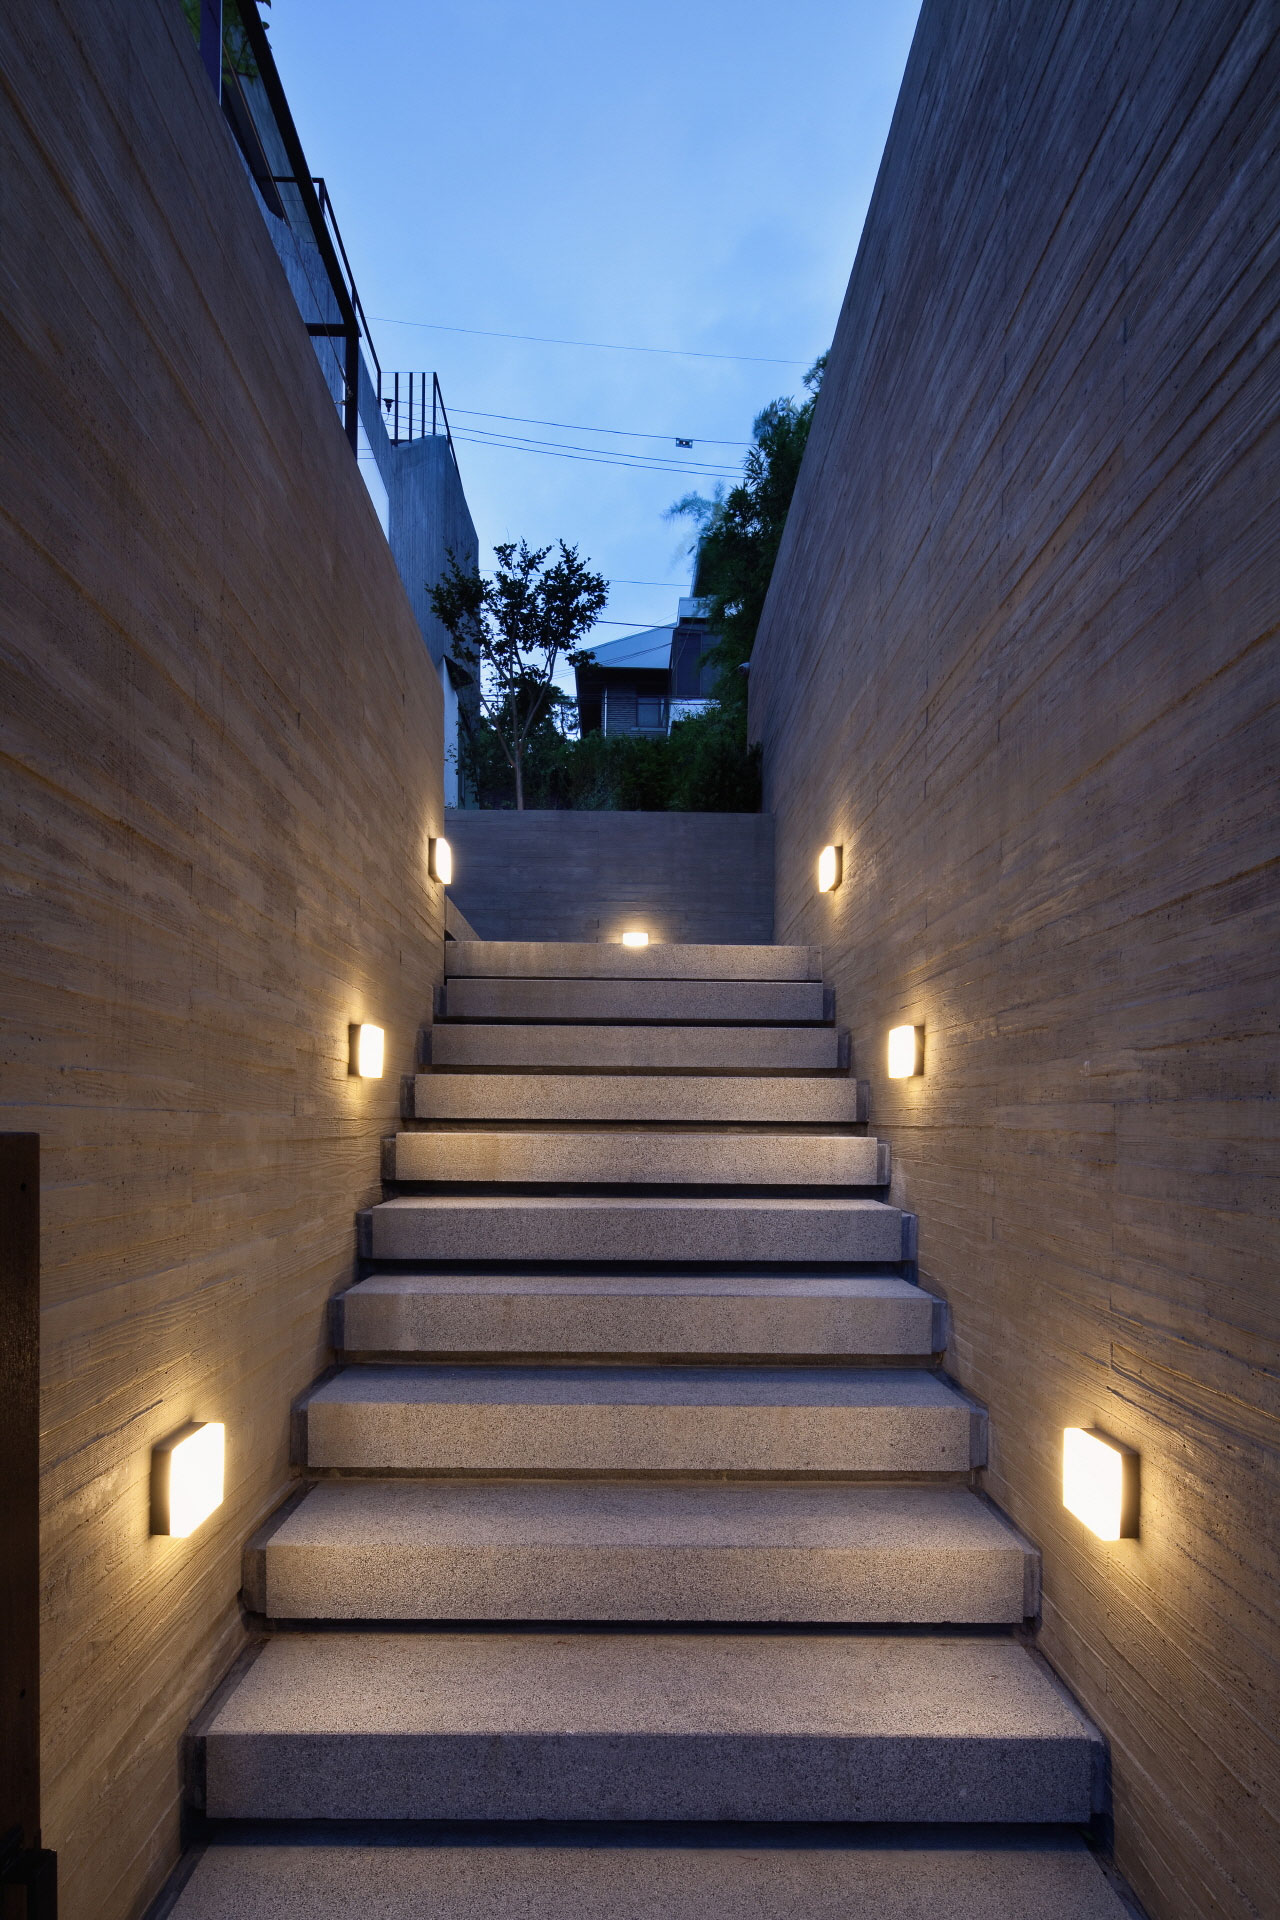 indoor step lighting ideas html with Outdoor Stairs Lighting on Teak Leaning Plant Stand also Staircase Wall Lighting Malaysia Indoor Led Recessed Stair Light C707643336d14d12 furthermore Outdoor Stairs Lighting moreover How To Build A Deck For A Hot Tub in addition Ferforje Merdiven Modelleri.